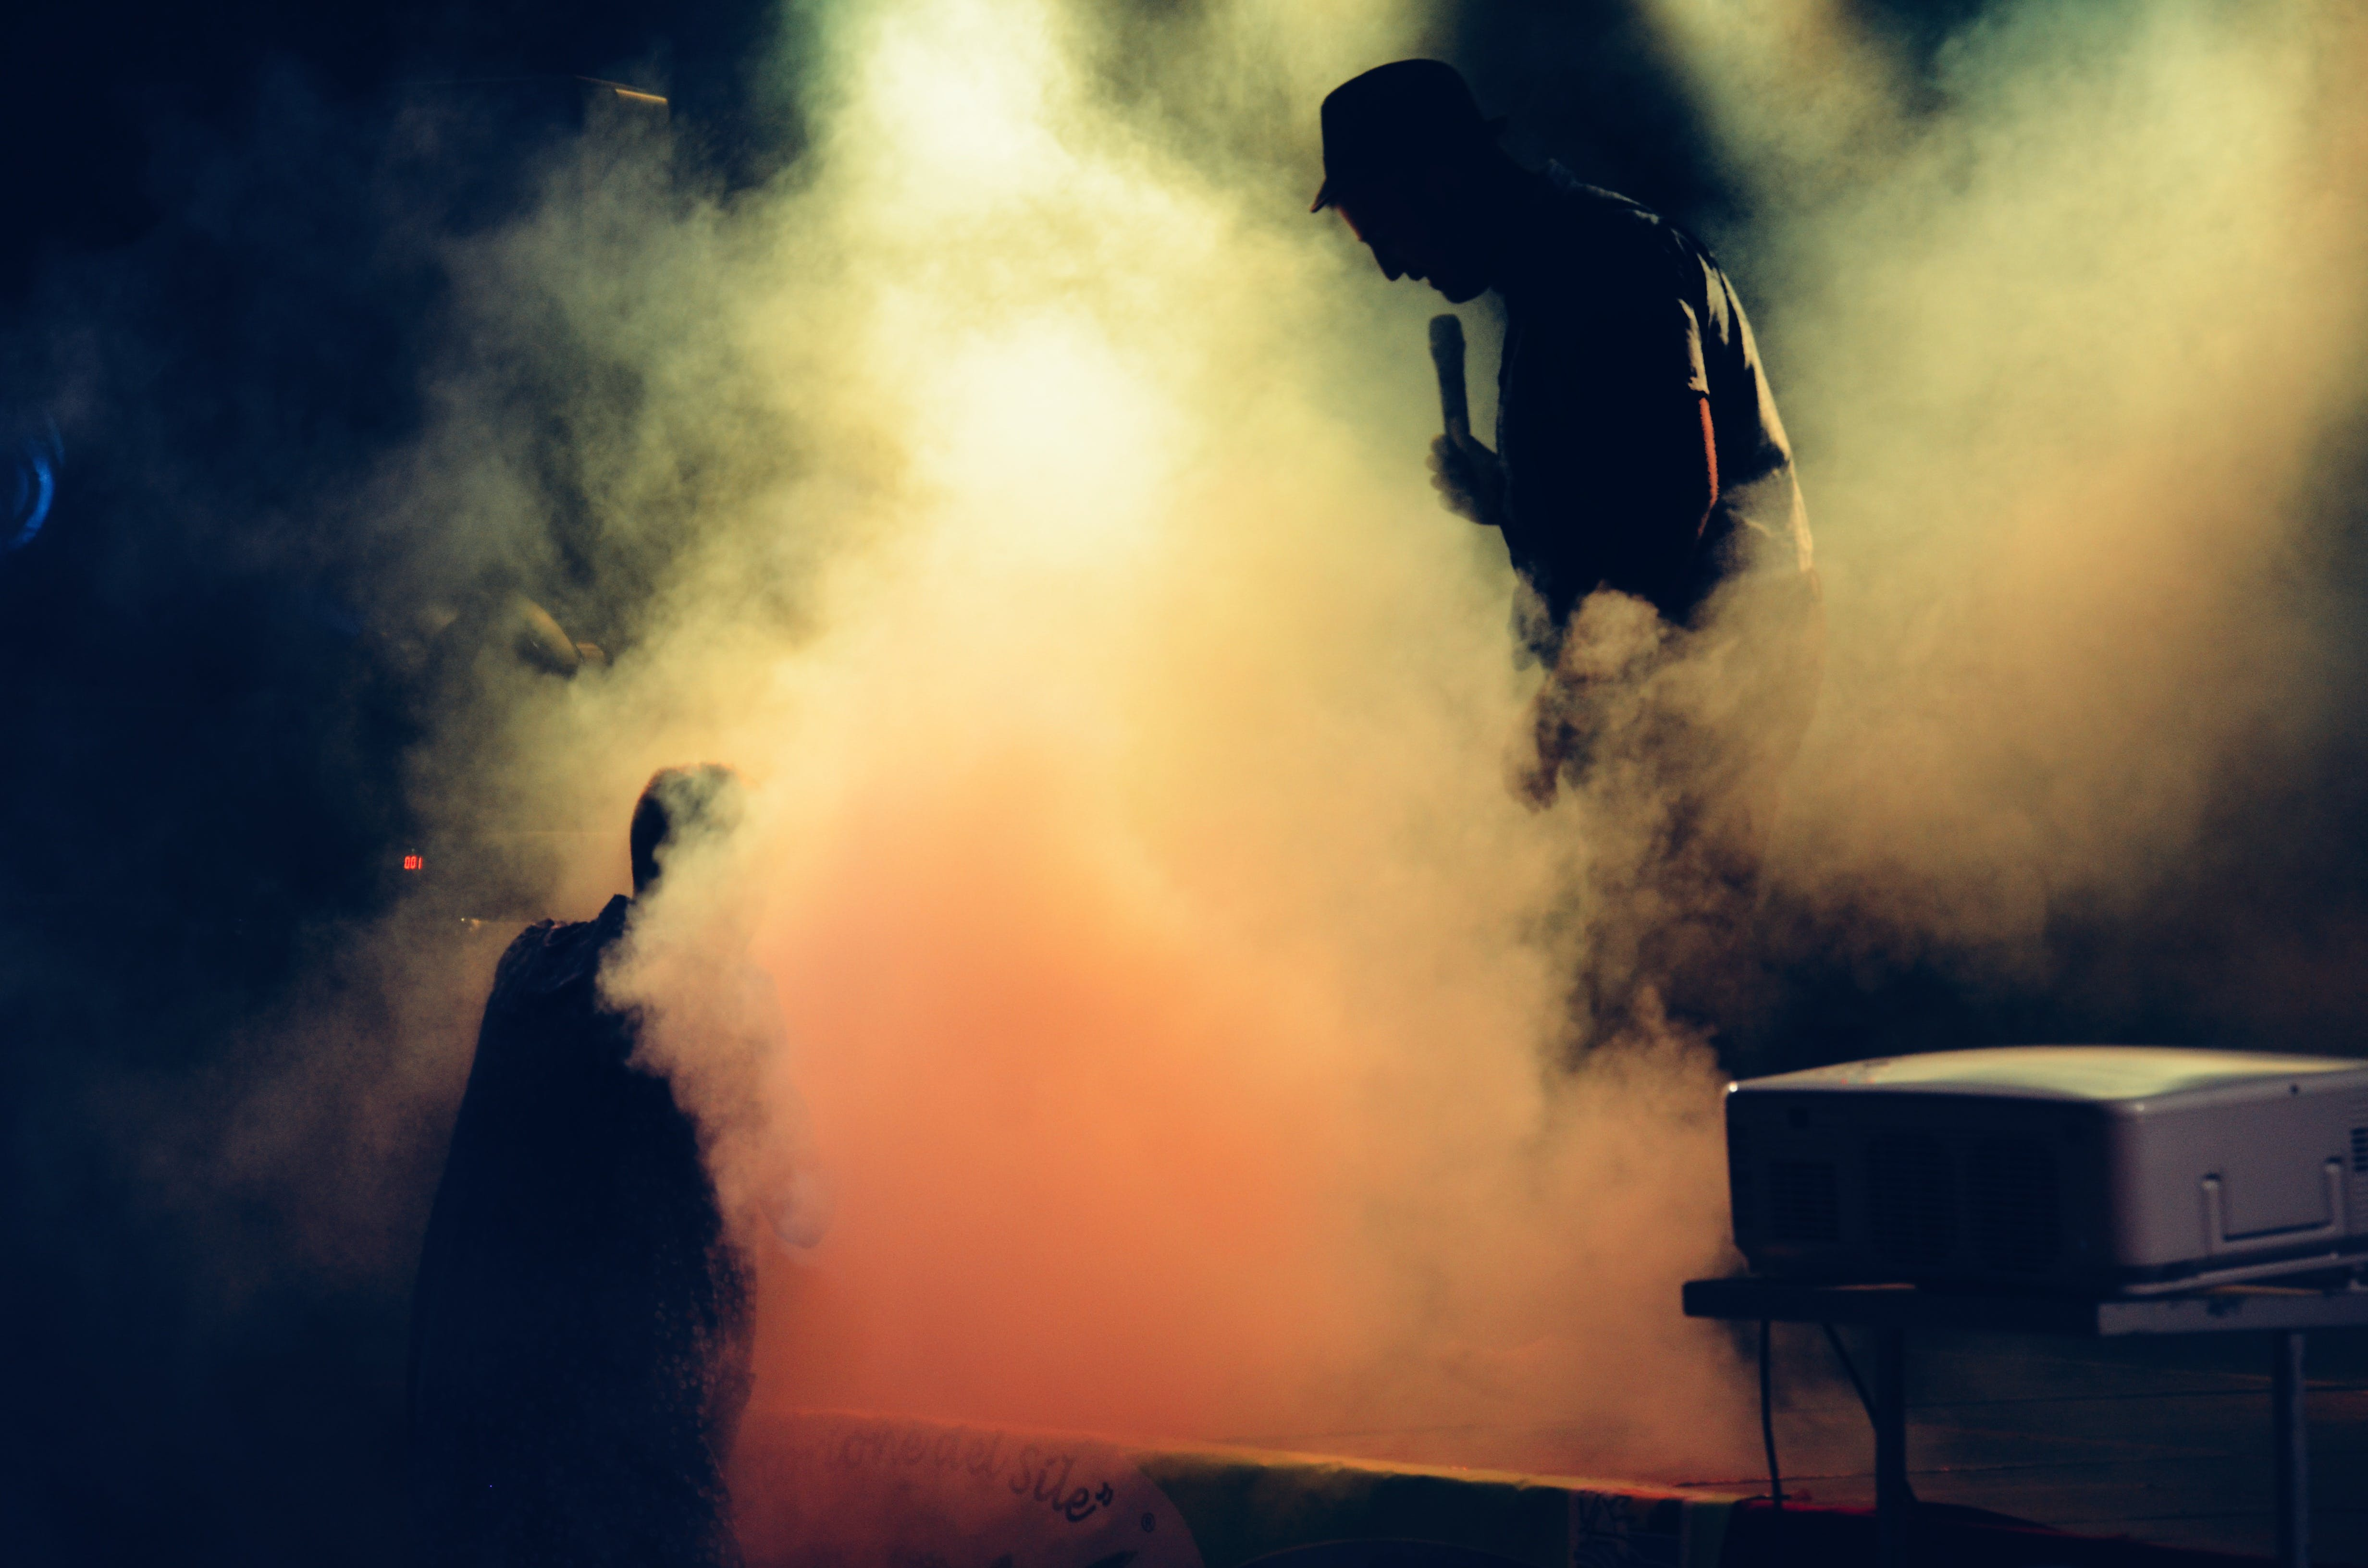 Man Holding Microphone at the Stage